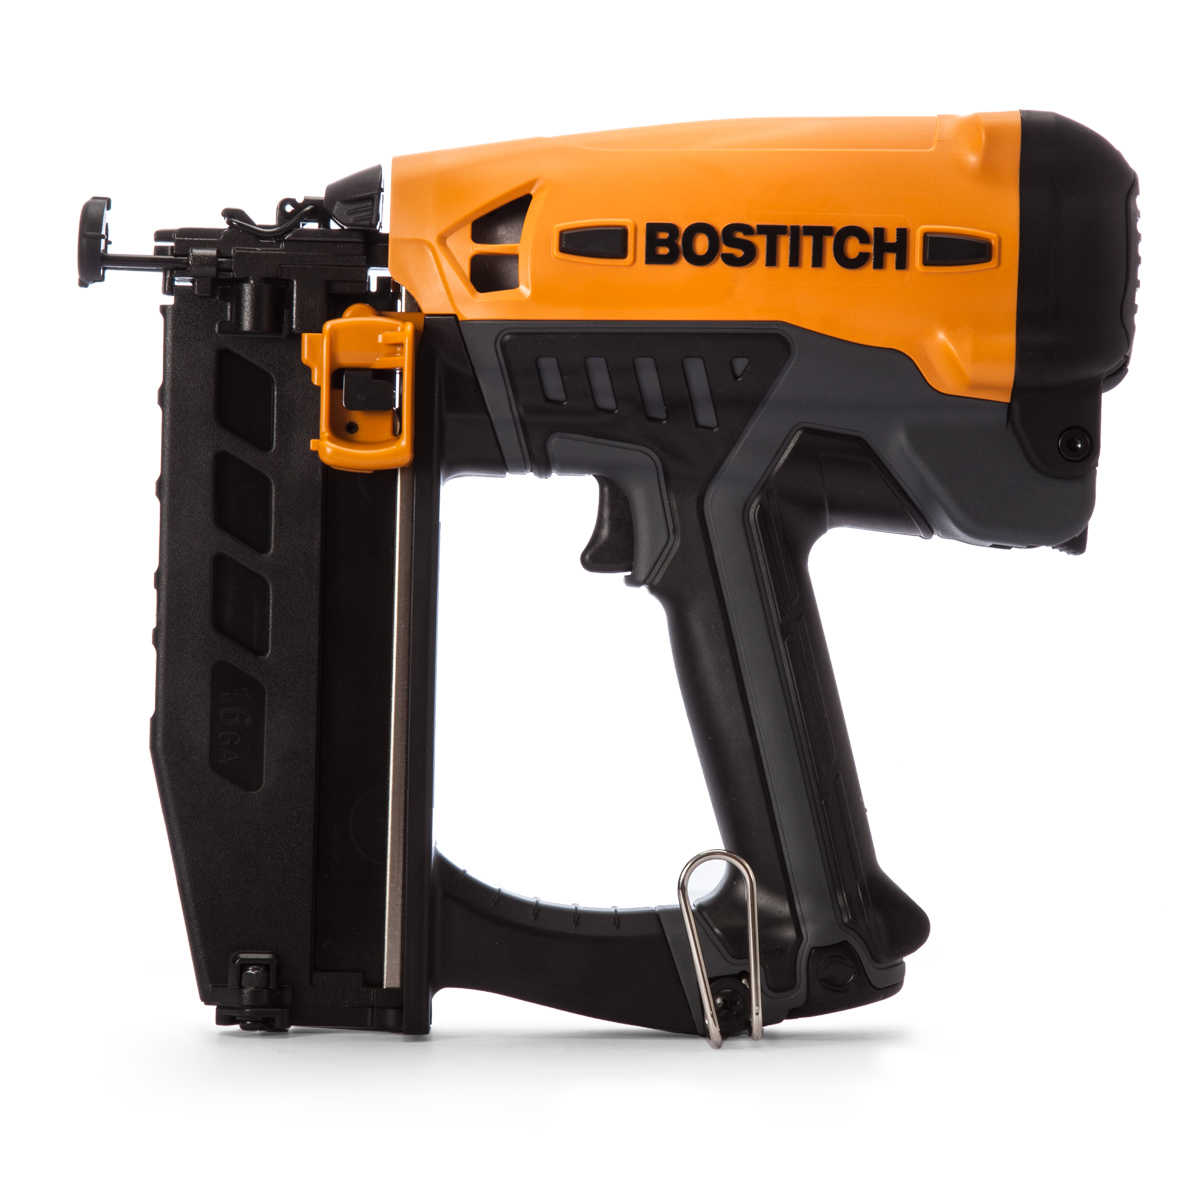 BOSTITCH Cordless Straight Finish Nailer gfn1664k Factory Reconditioned